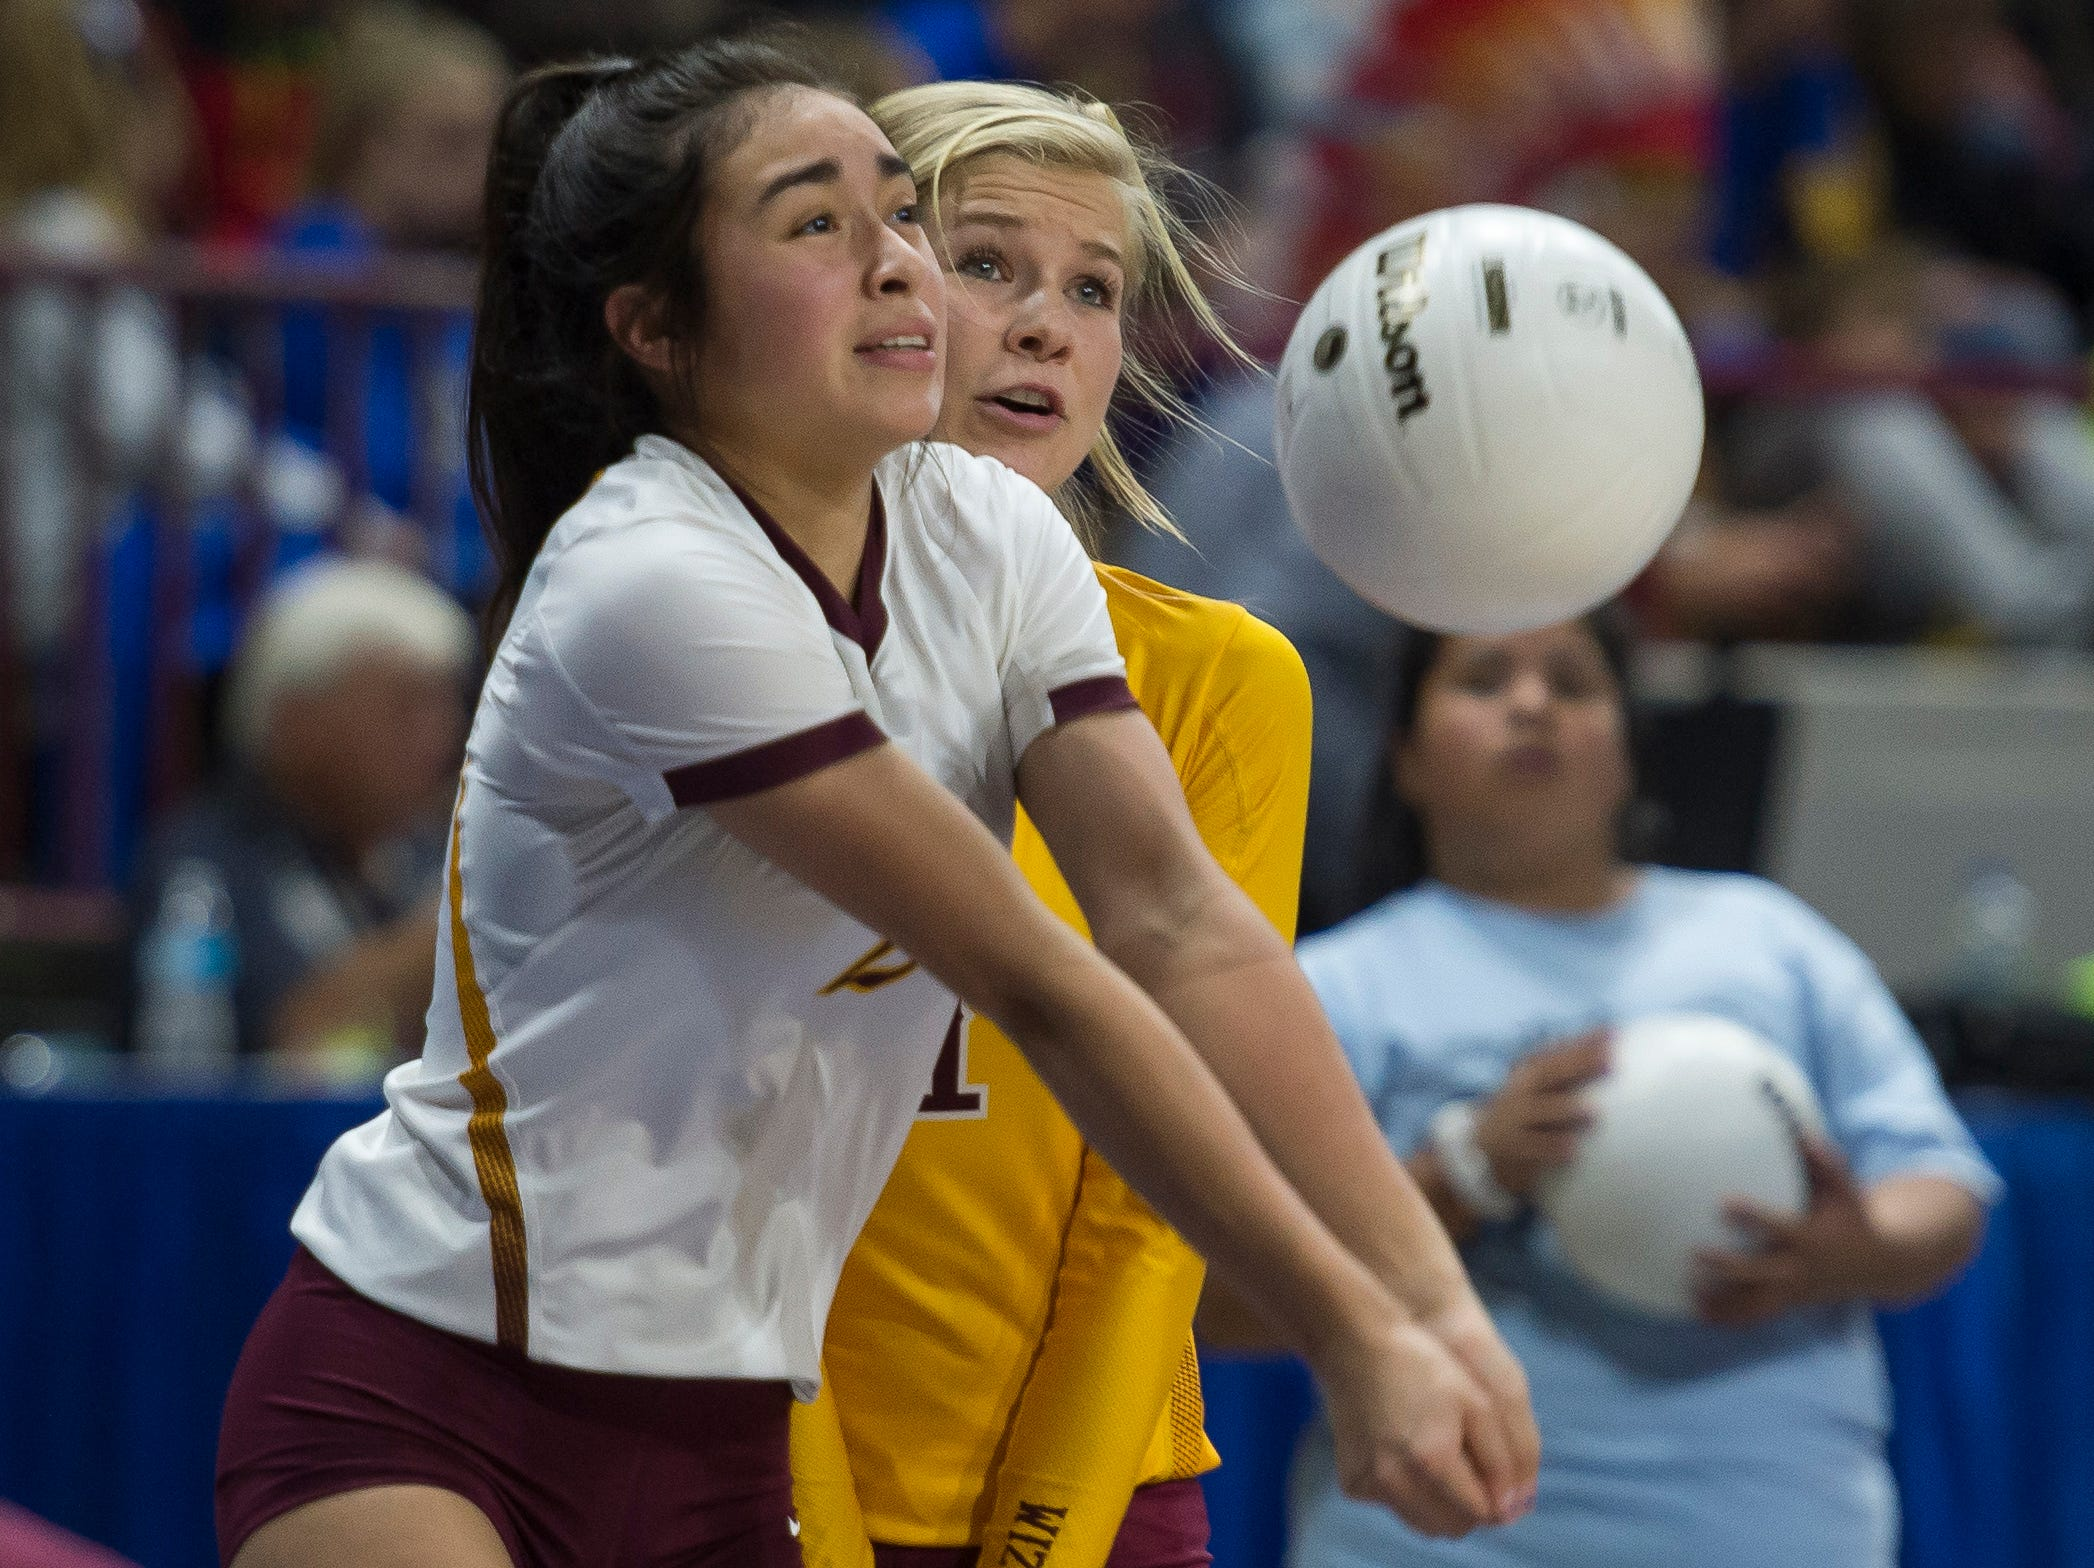 Windsor High School sophomore Ivett Dominguez (2) gains control of a serve during a state first round game against Fossil Ridge High School on Thursday, Nov. 8, 2018, at the Denver Coliseum in Denver, Colo.